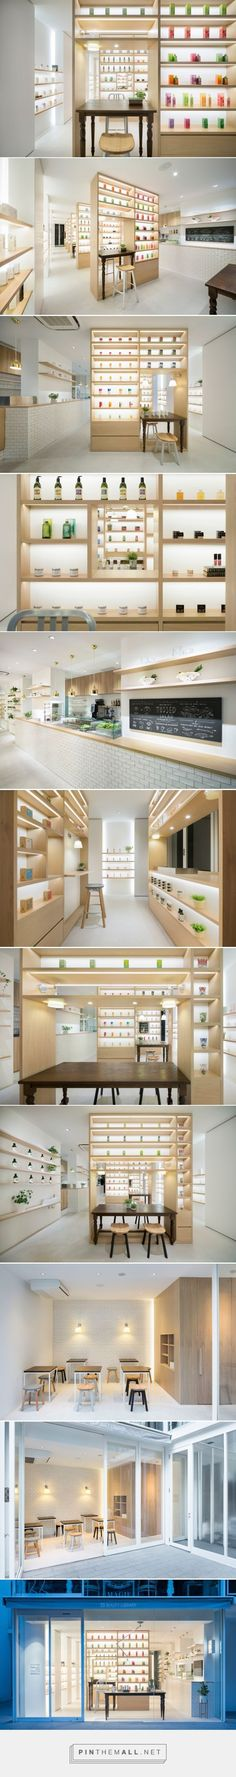 nendo designed cosmetics store in tokyo incorporates self study beauty areas - created via http://pinthemall.net: